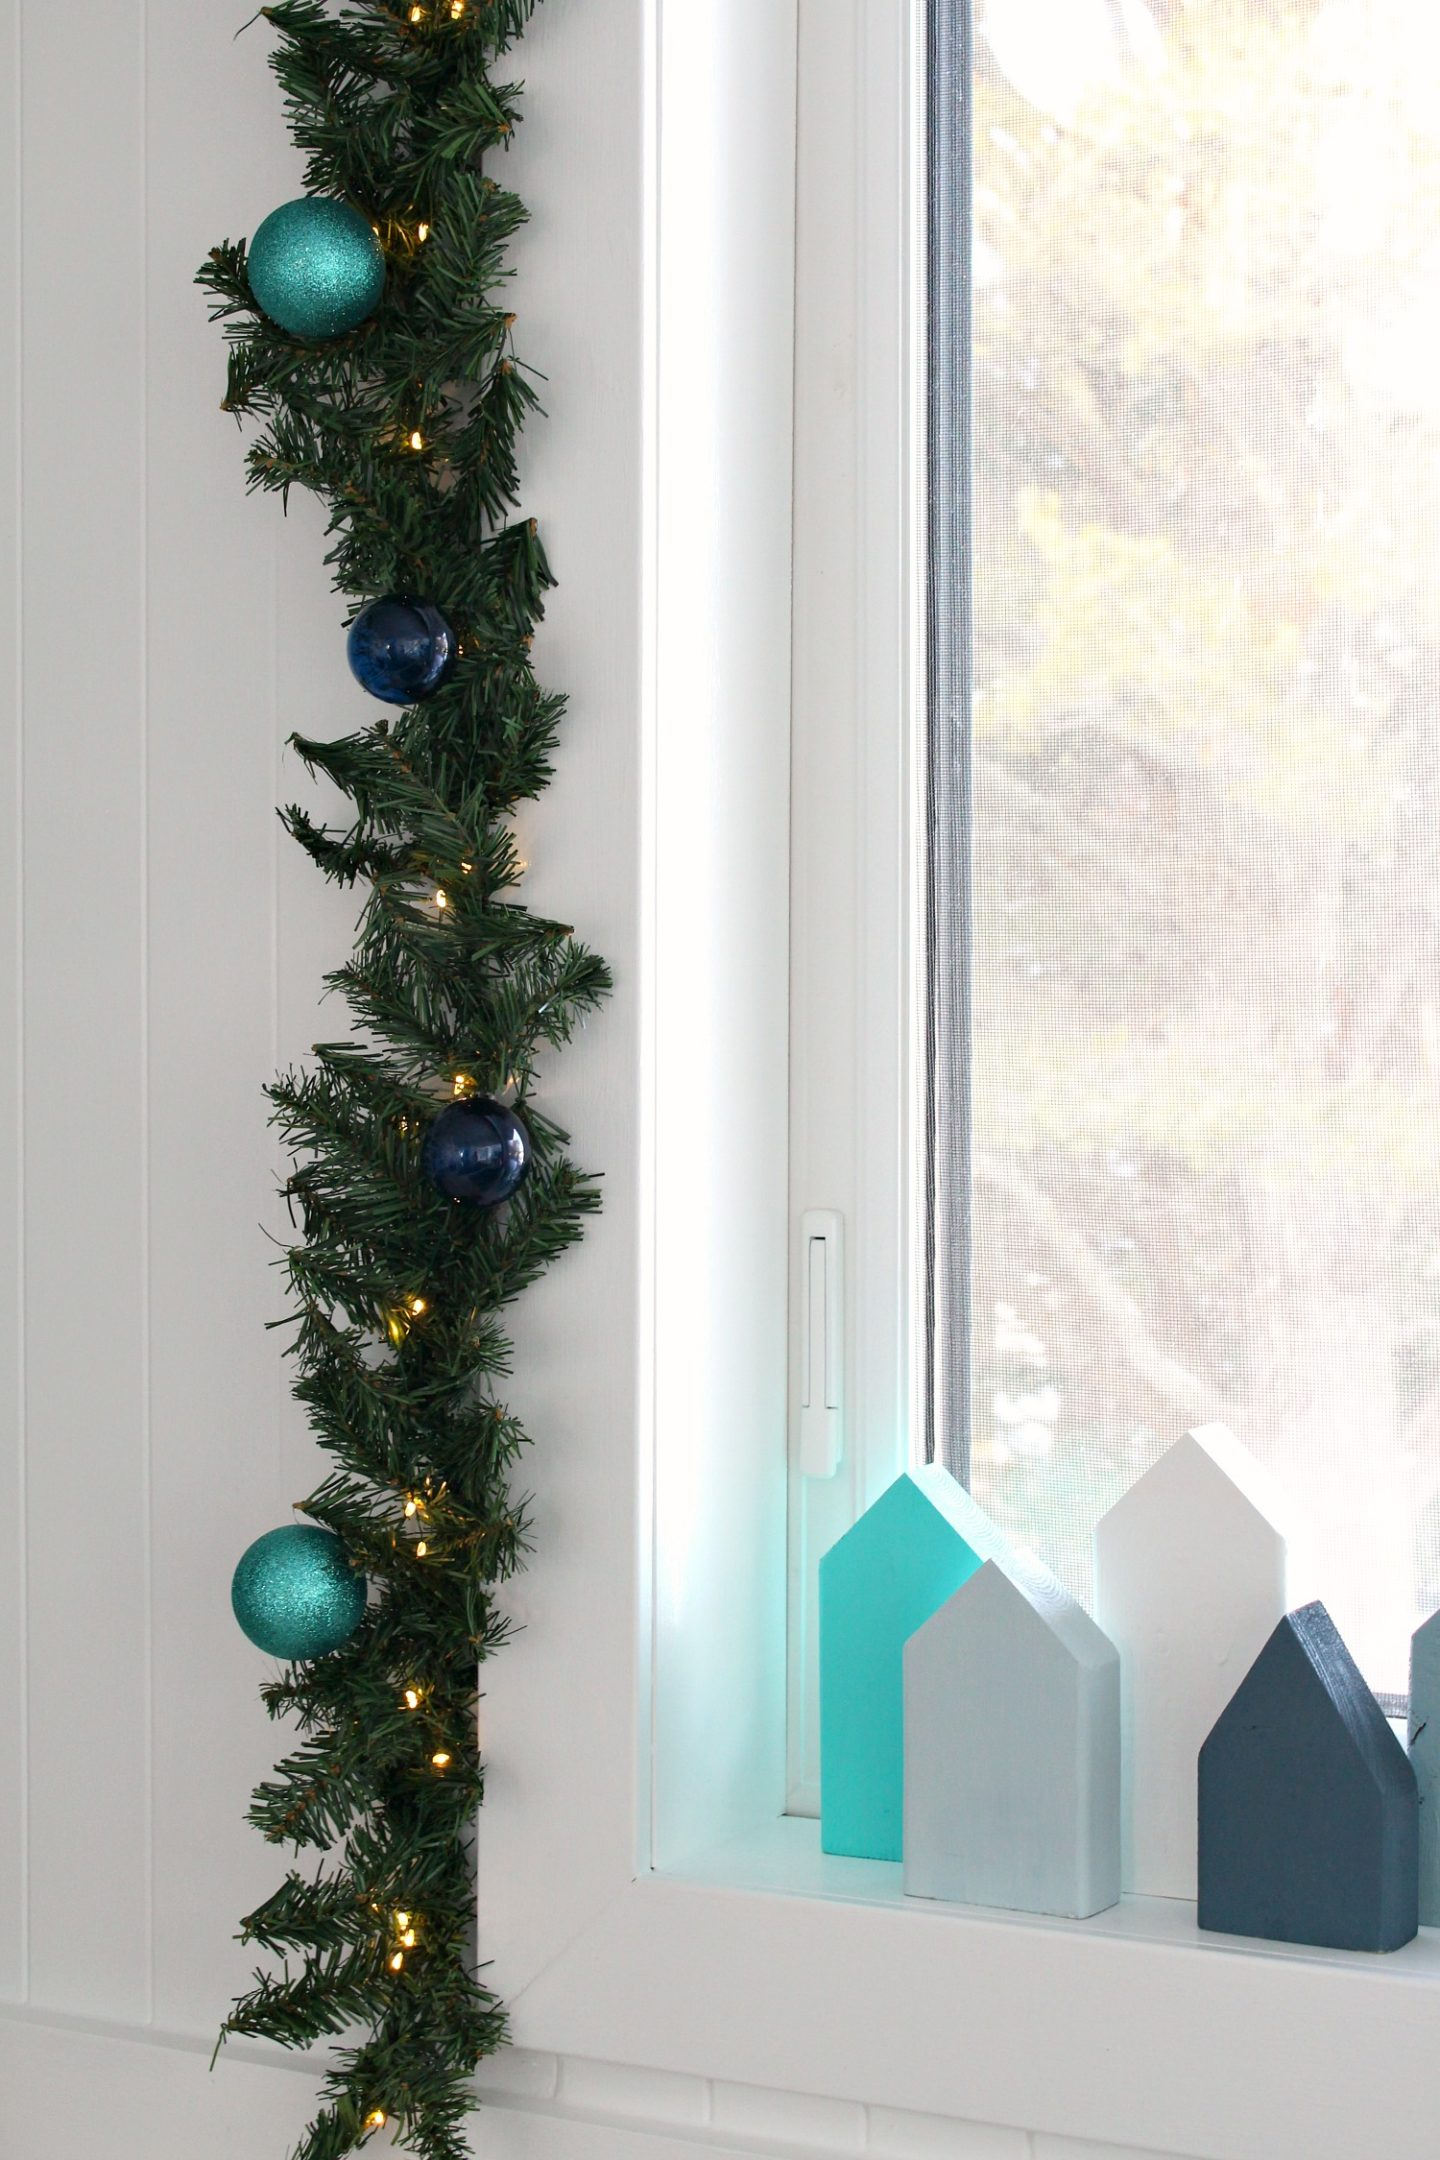 Dollar Store Garland DIY Project